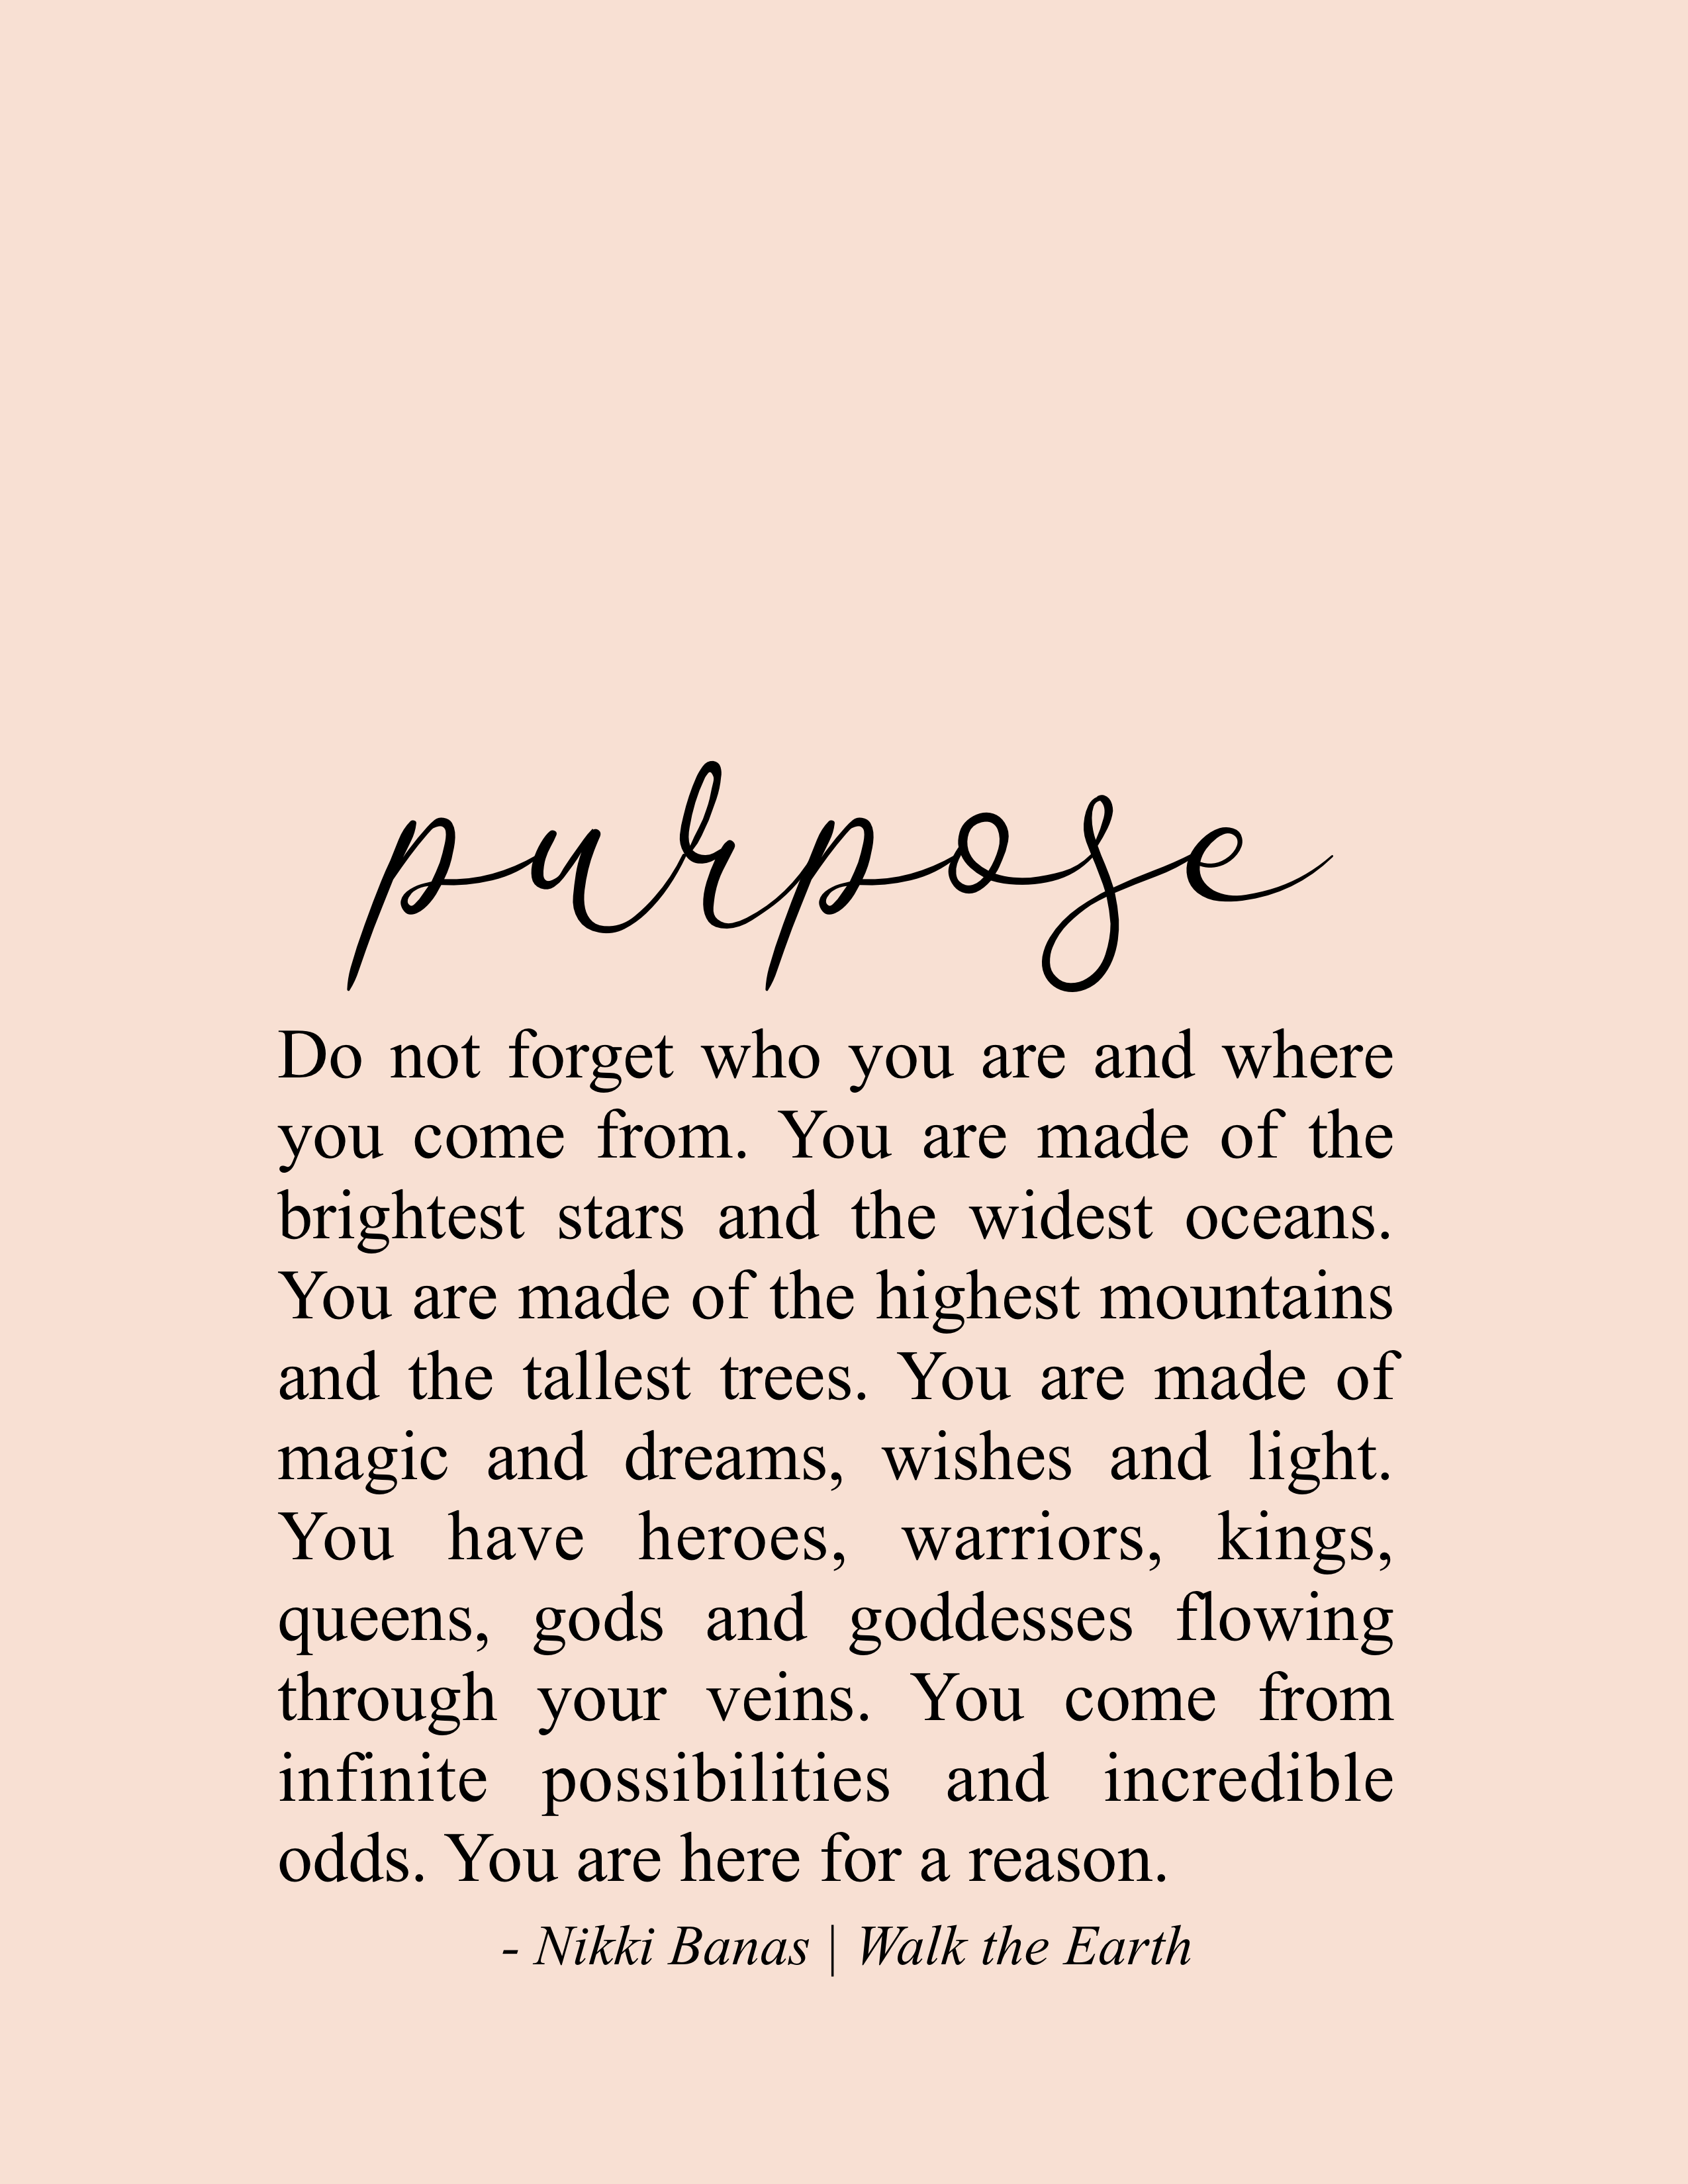 Purpose Quotes Life S Purpose Mission Encouragement Quotes Nikki Banas Walk The Earth Poetry Purpose Quotes Encouragement Quotes Earth Quotes